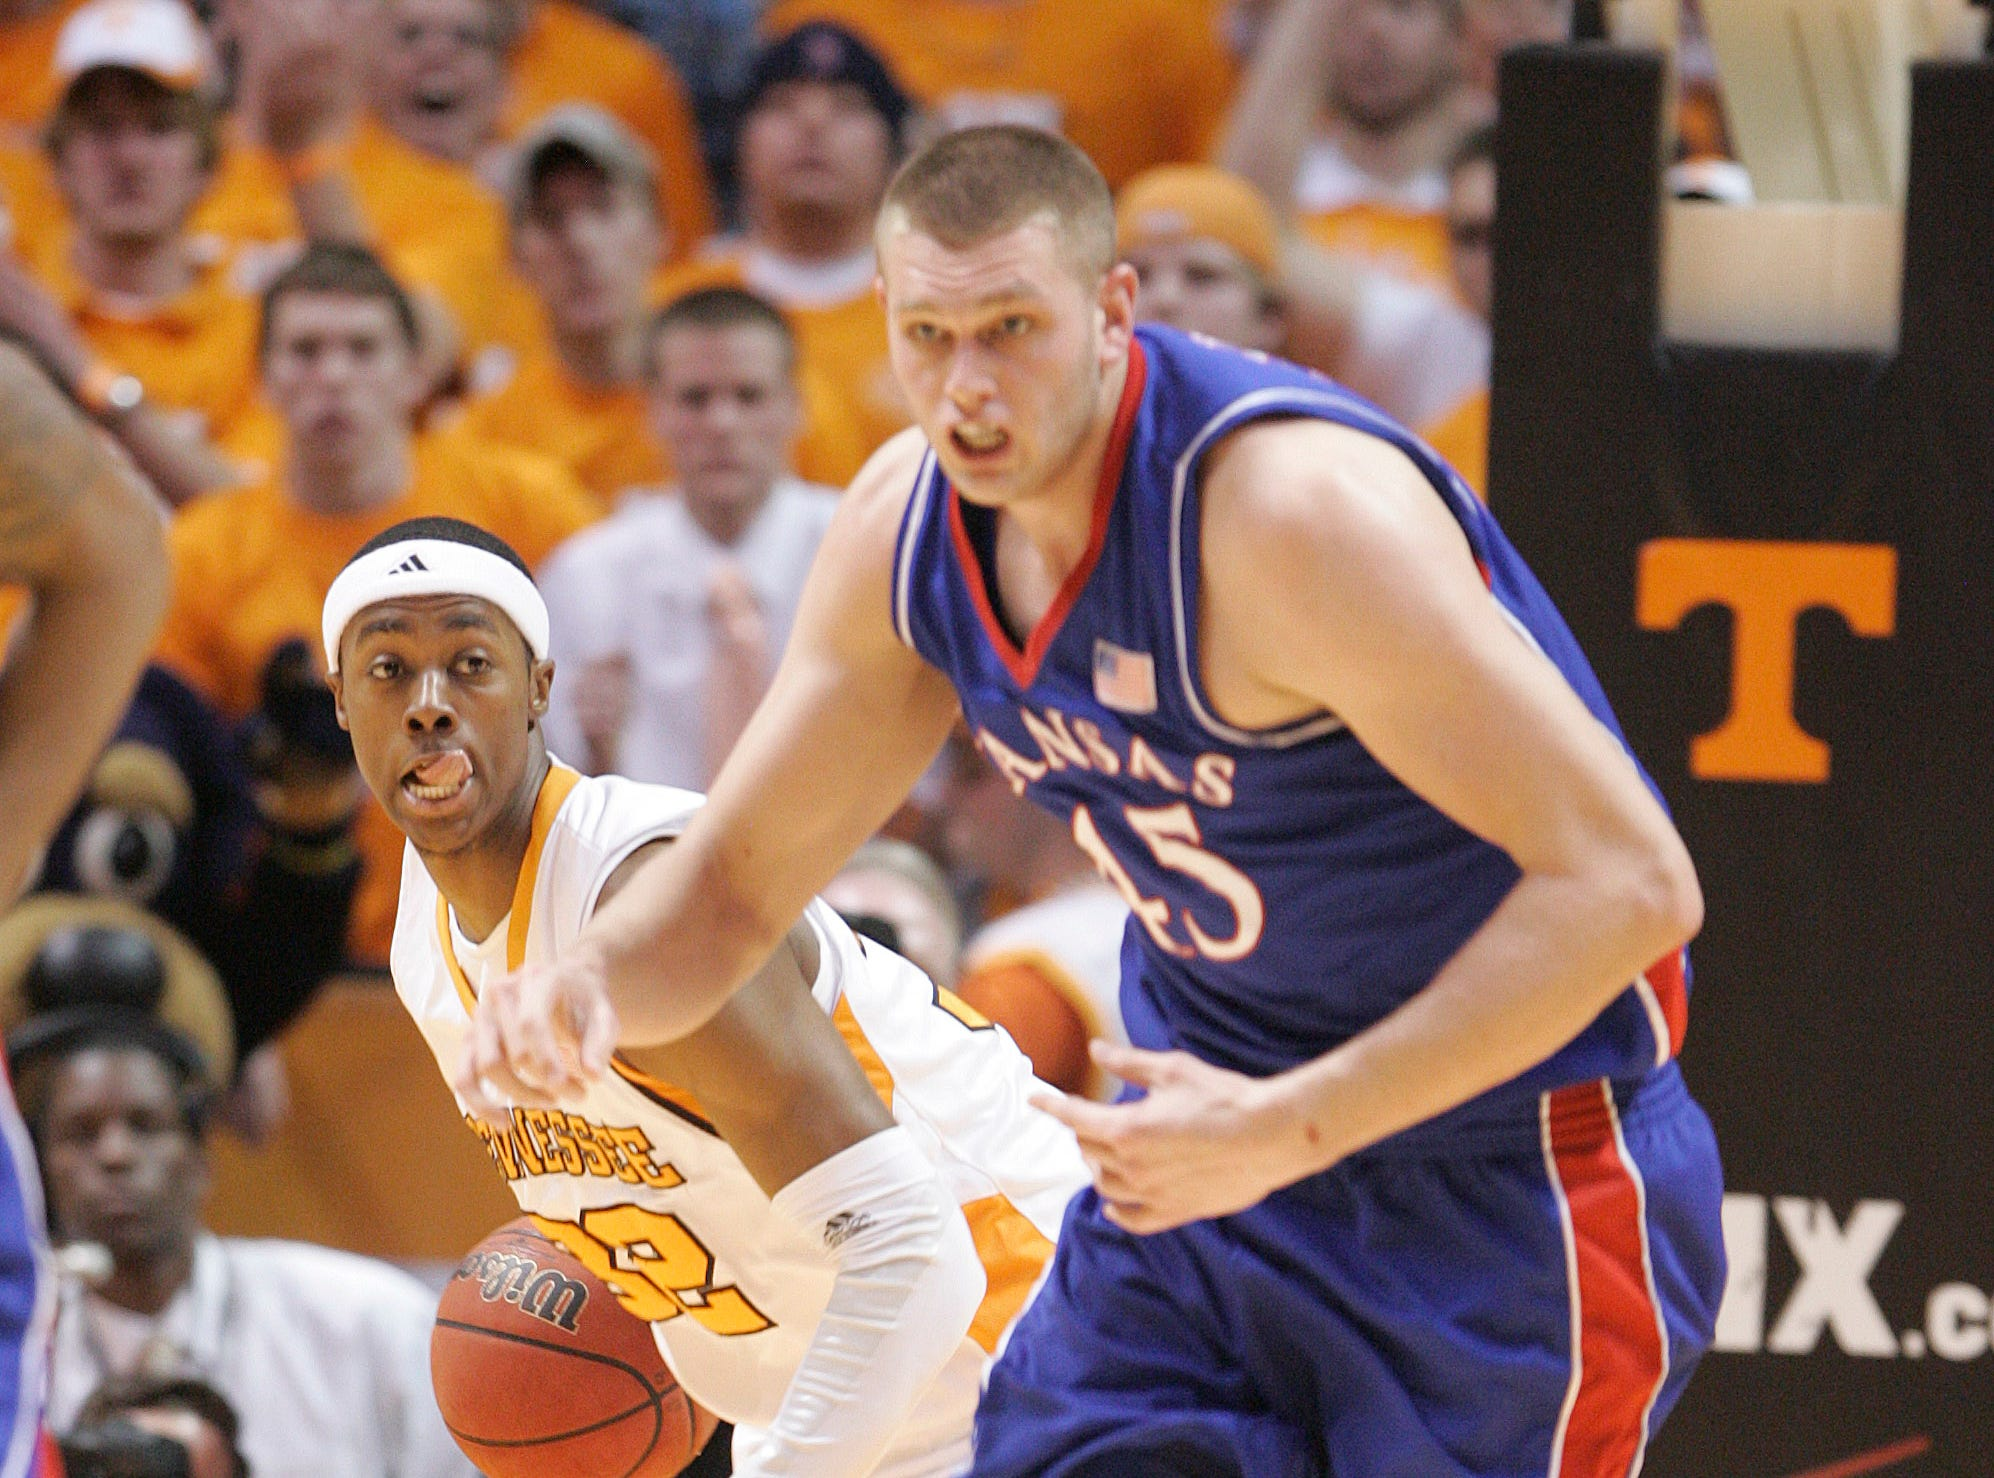 Tennessee's Scotty Hopson (32) rebounds ball against Kansas' Cole Aldrich (45) during the first half of an NCAA college basketball game Sunday, Jan. 10, 2010 in Knoxville, Tenn.